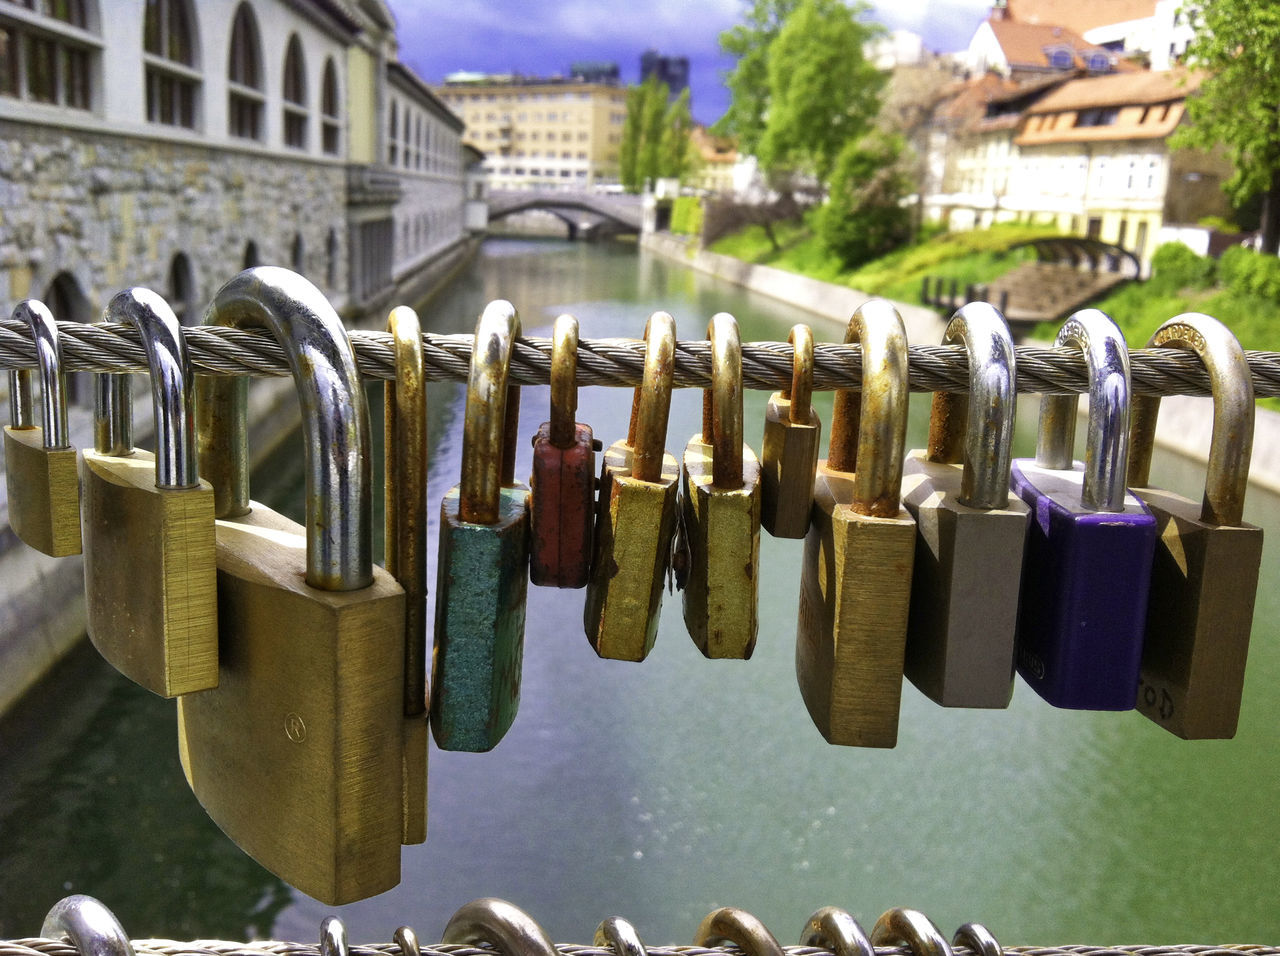 Bridge Cityscapes Close-up Different Sizes Focus On Foreground Hanging Hopes And Dreams Ljubljana Lock Locks Locks Of Love Love Love Lock Love Sign Metal My Year My View No People Padlock Perspective Photography Promise Protection Riverside Safety Streetphotography Water